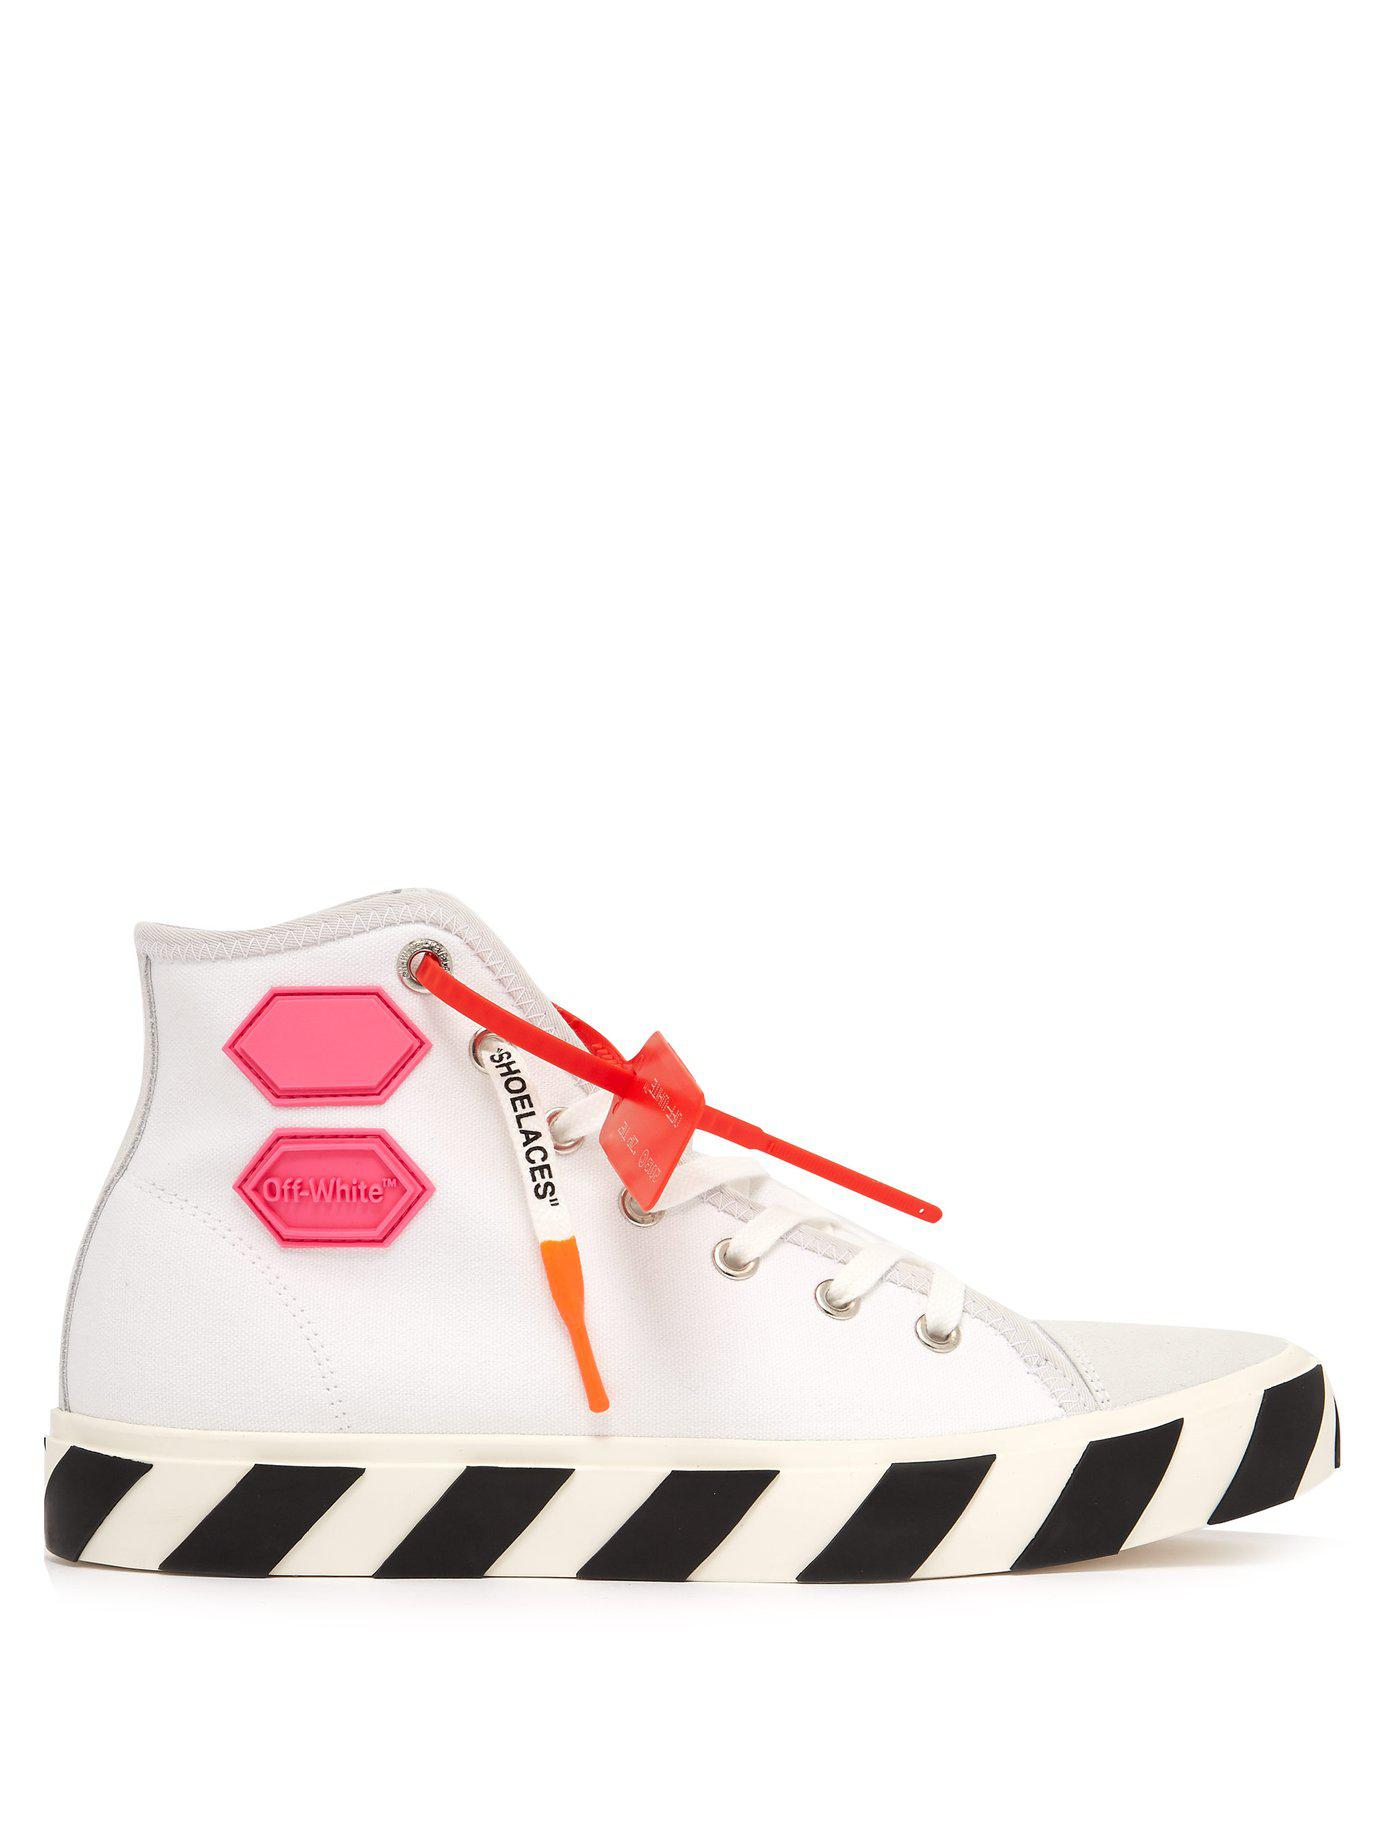 c9bef02e728d91 Lyst - Off-White c o Virgil Abloh Vulc High Top Trainers for Men